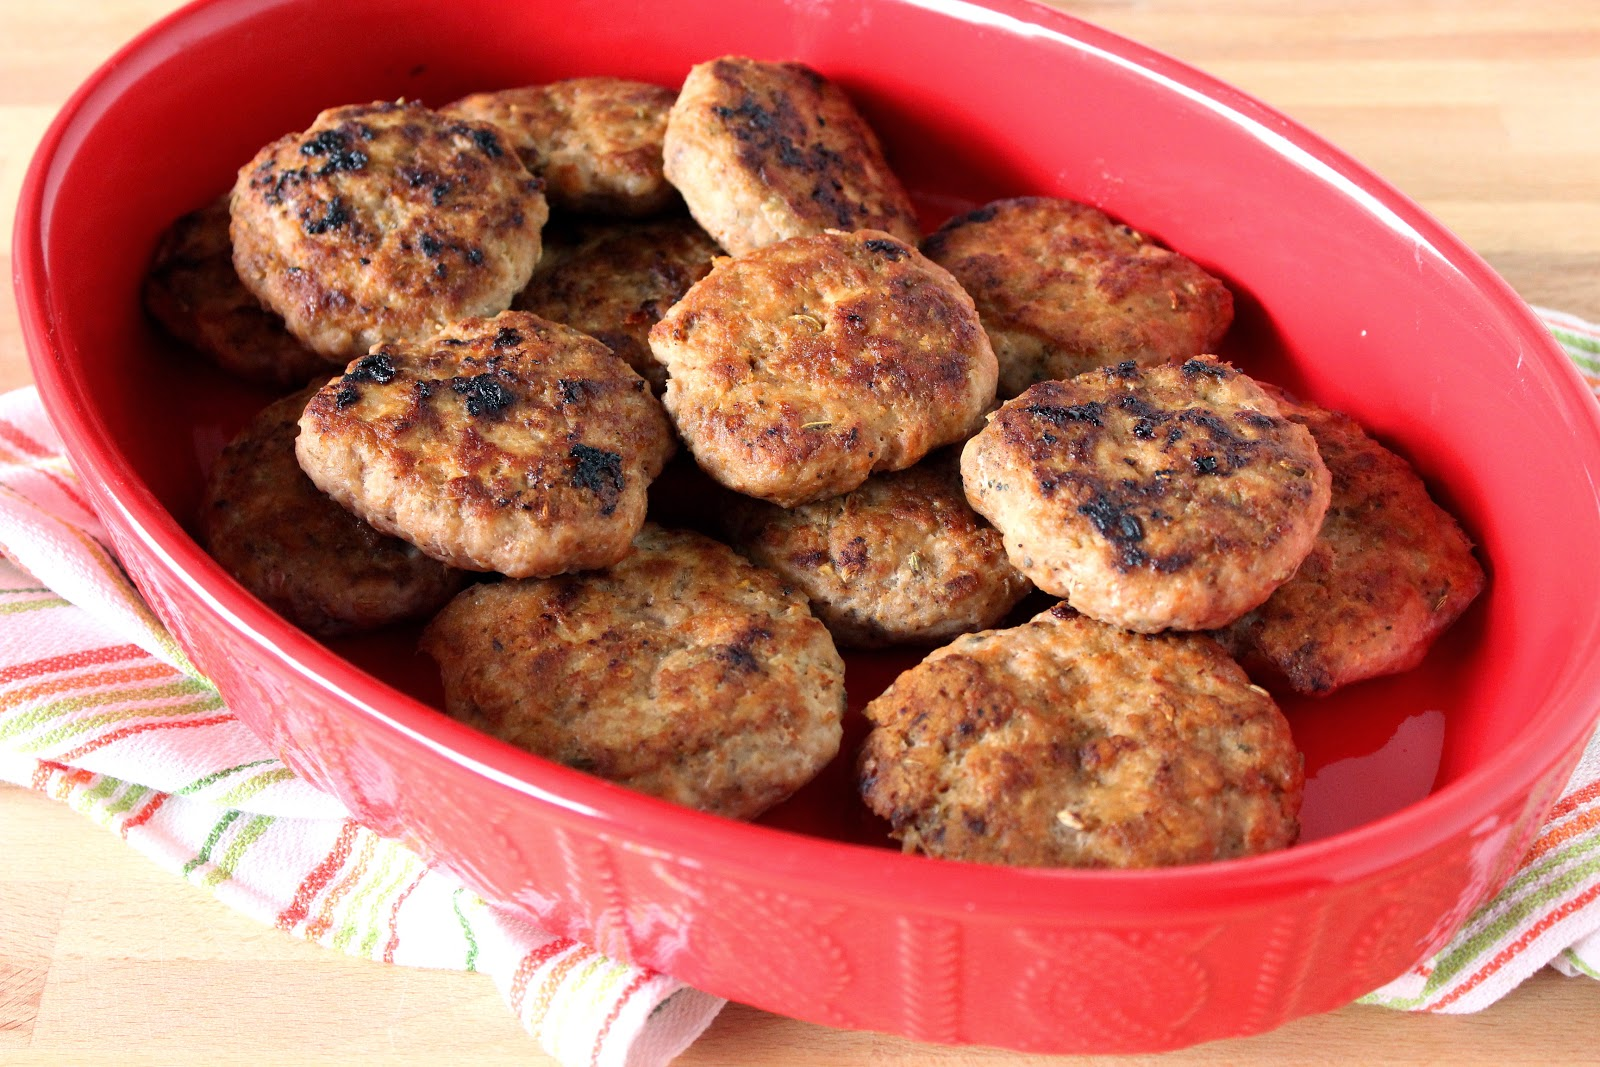 Homemade Turkey Breakfast Sausages are moist and loaded with flavor.